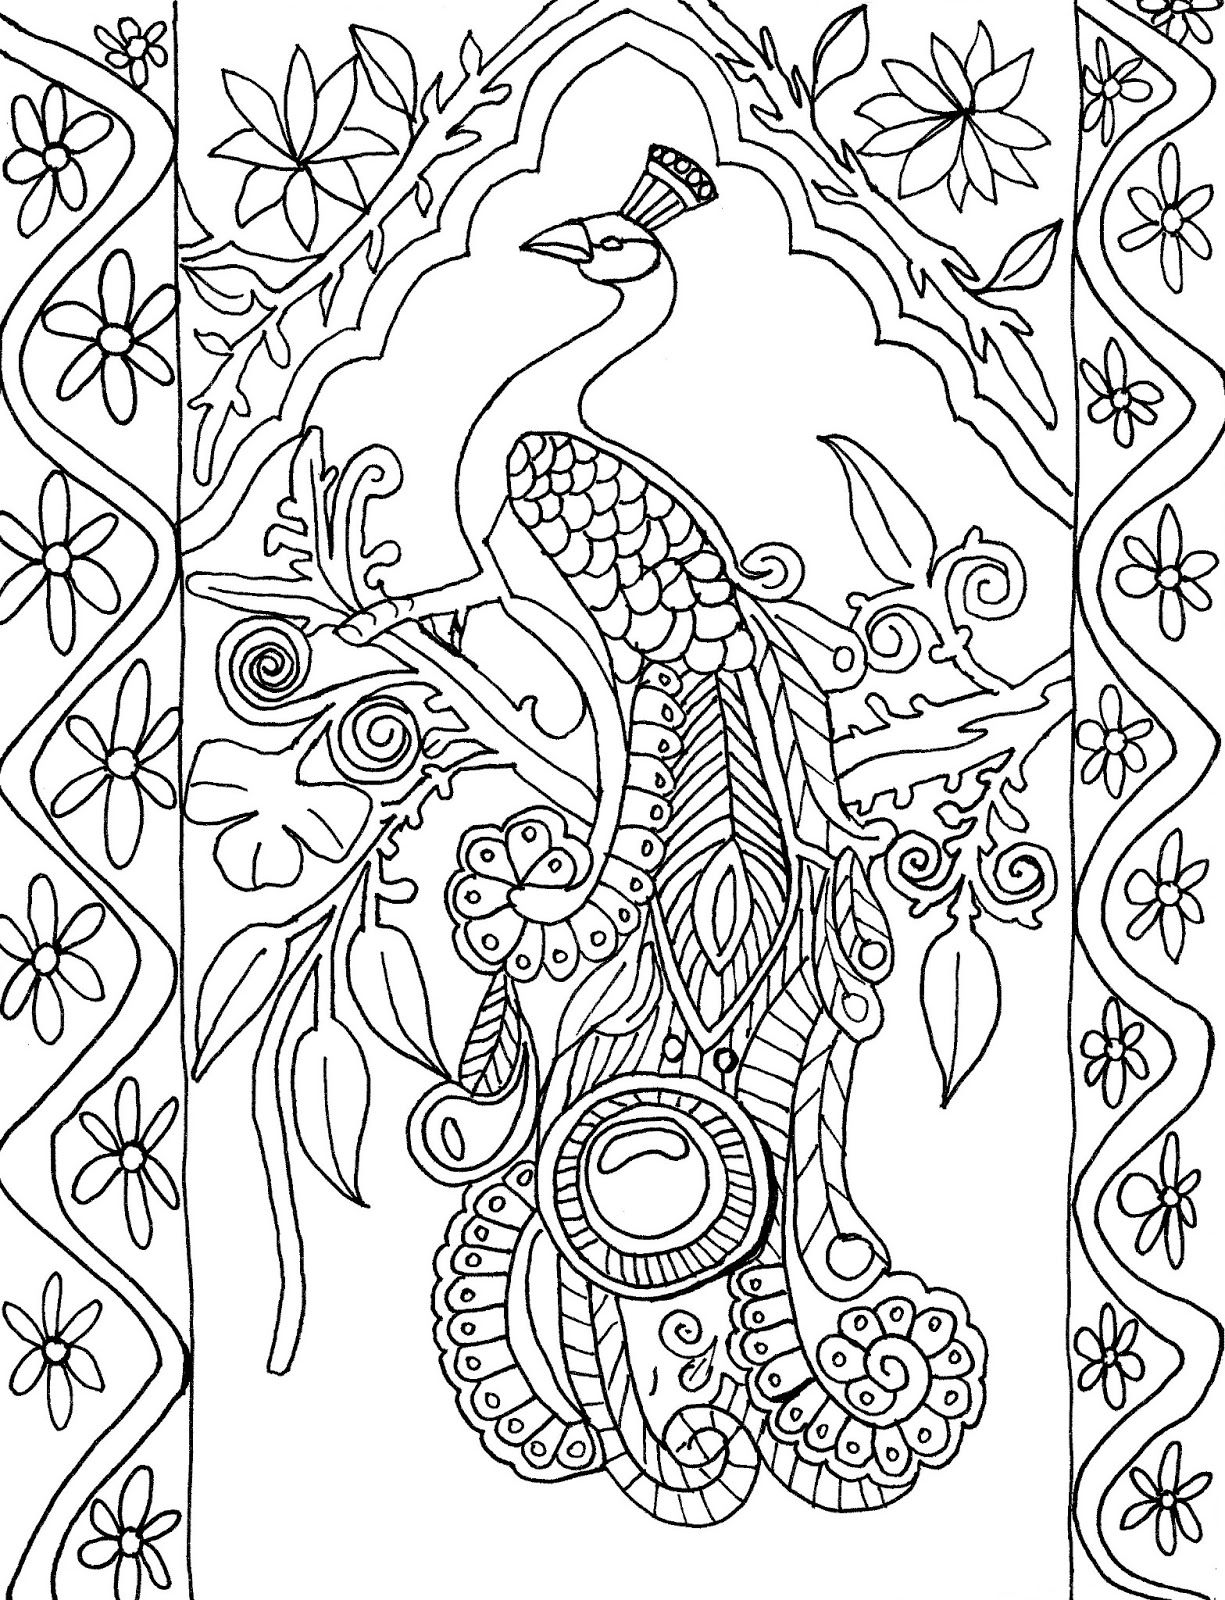 colorfy colouring pages - Pesquisa Google | Colouring | Pinterest ...